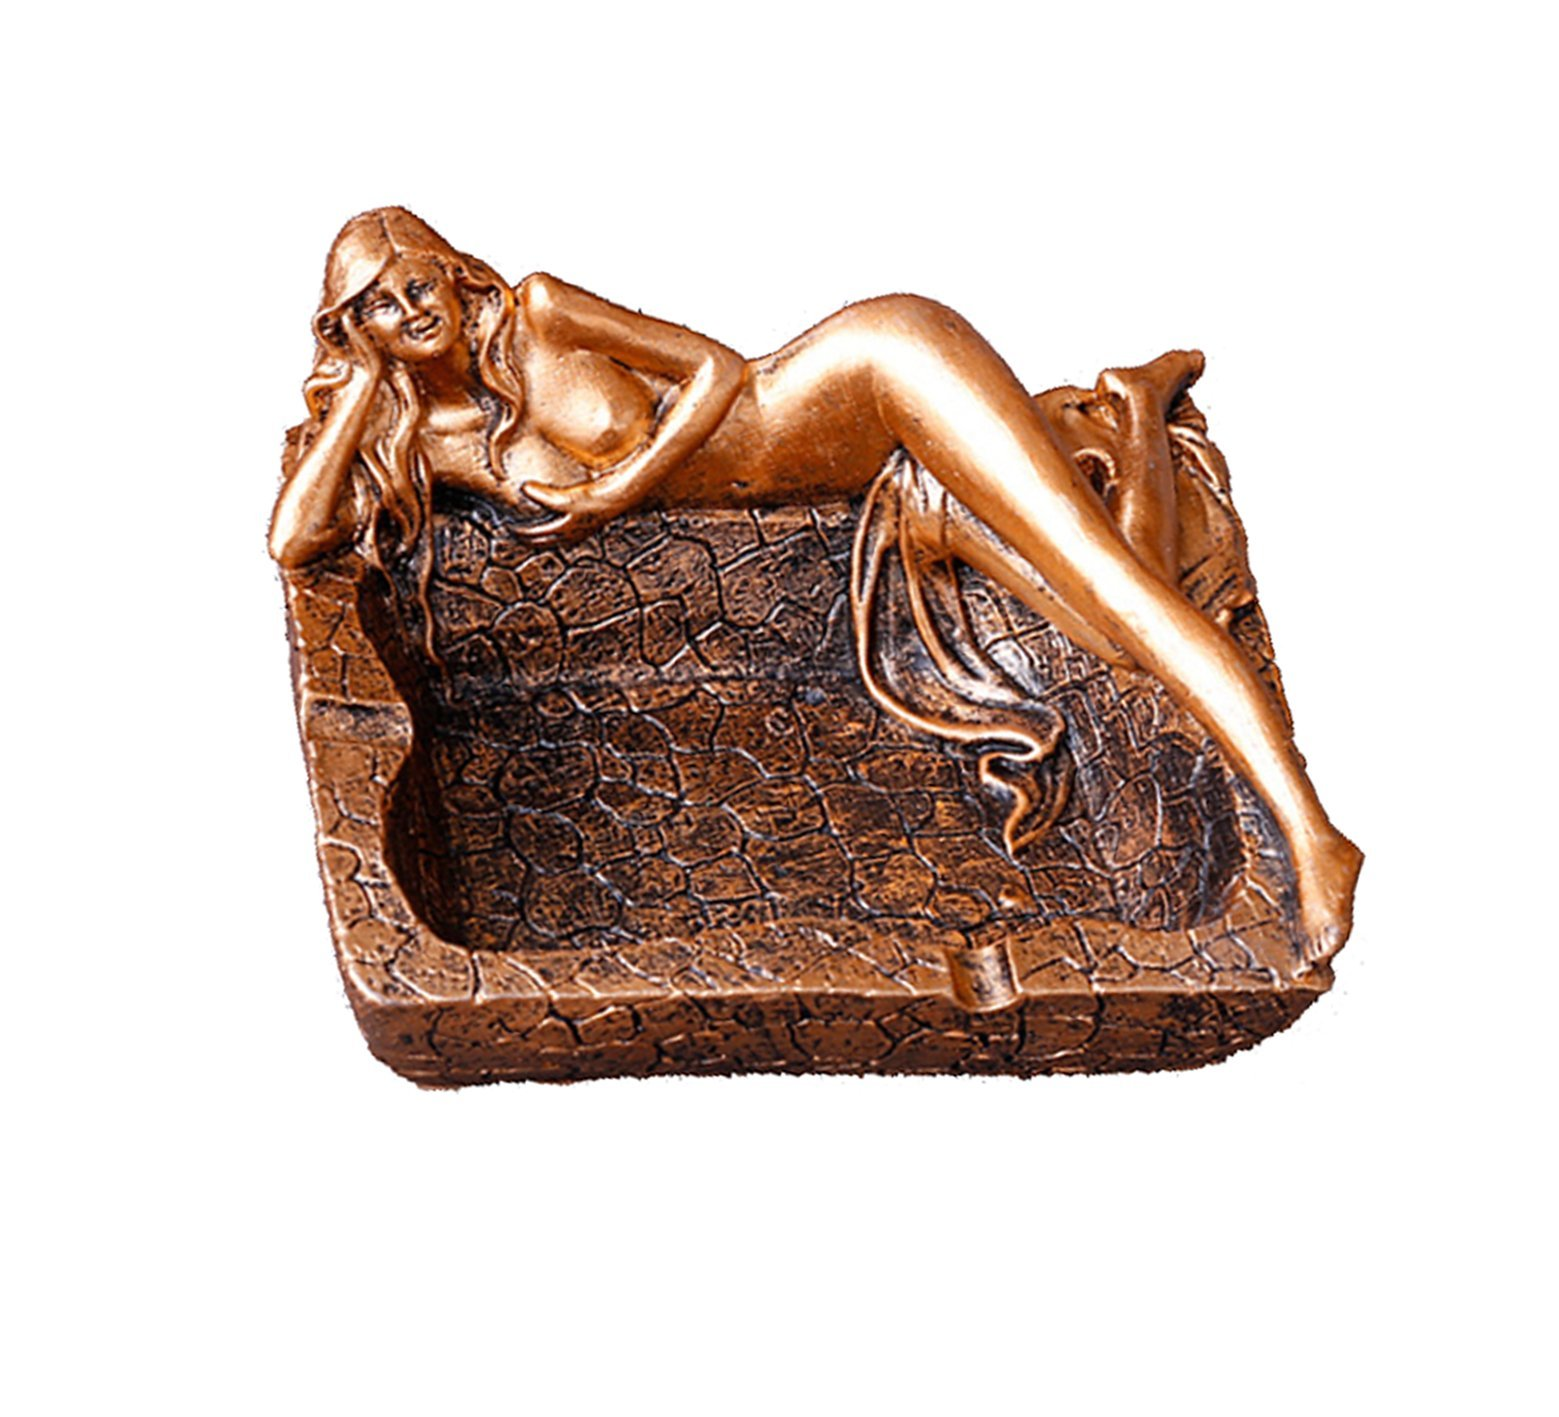 C & S Cigarette Ashtray Vintage Beauty Naked Women Resin Statue, Ash Holder for Smokers, Tabletop Smoking Ash Tray for Home Bar Decoration, Creative Gift (Bronze)